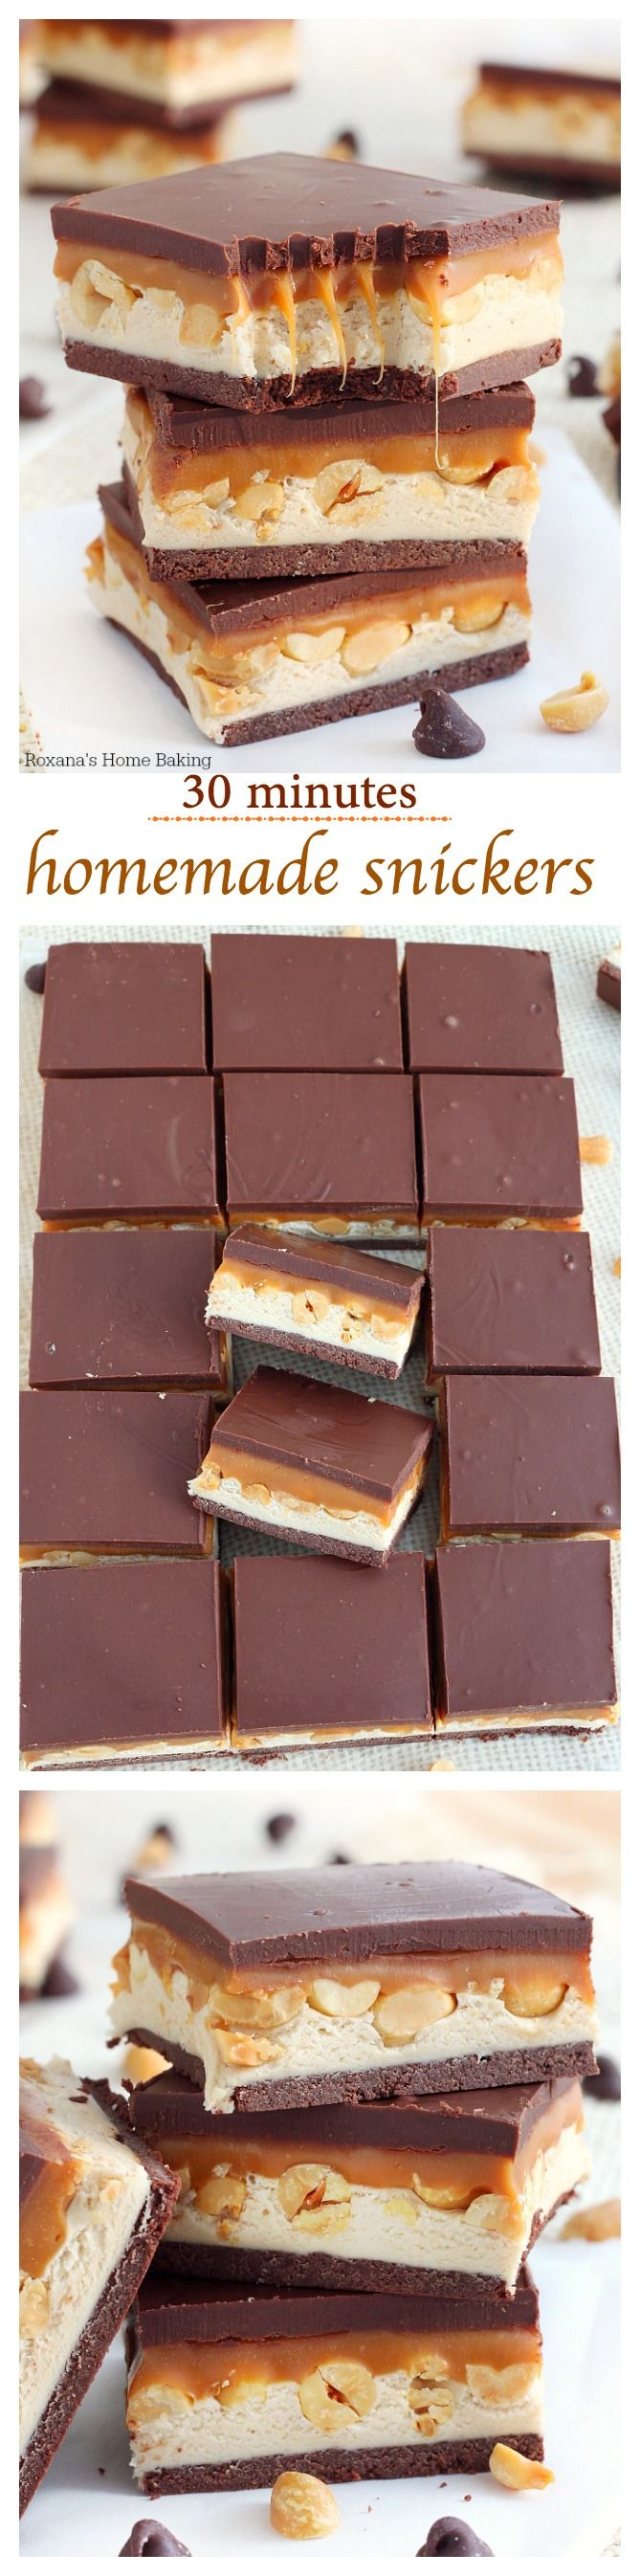 Nougat, peanuts and caramel sandwiched between two chocolate layers, these homemade snickers bars come together in 30 minutes!